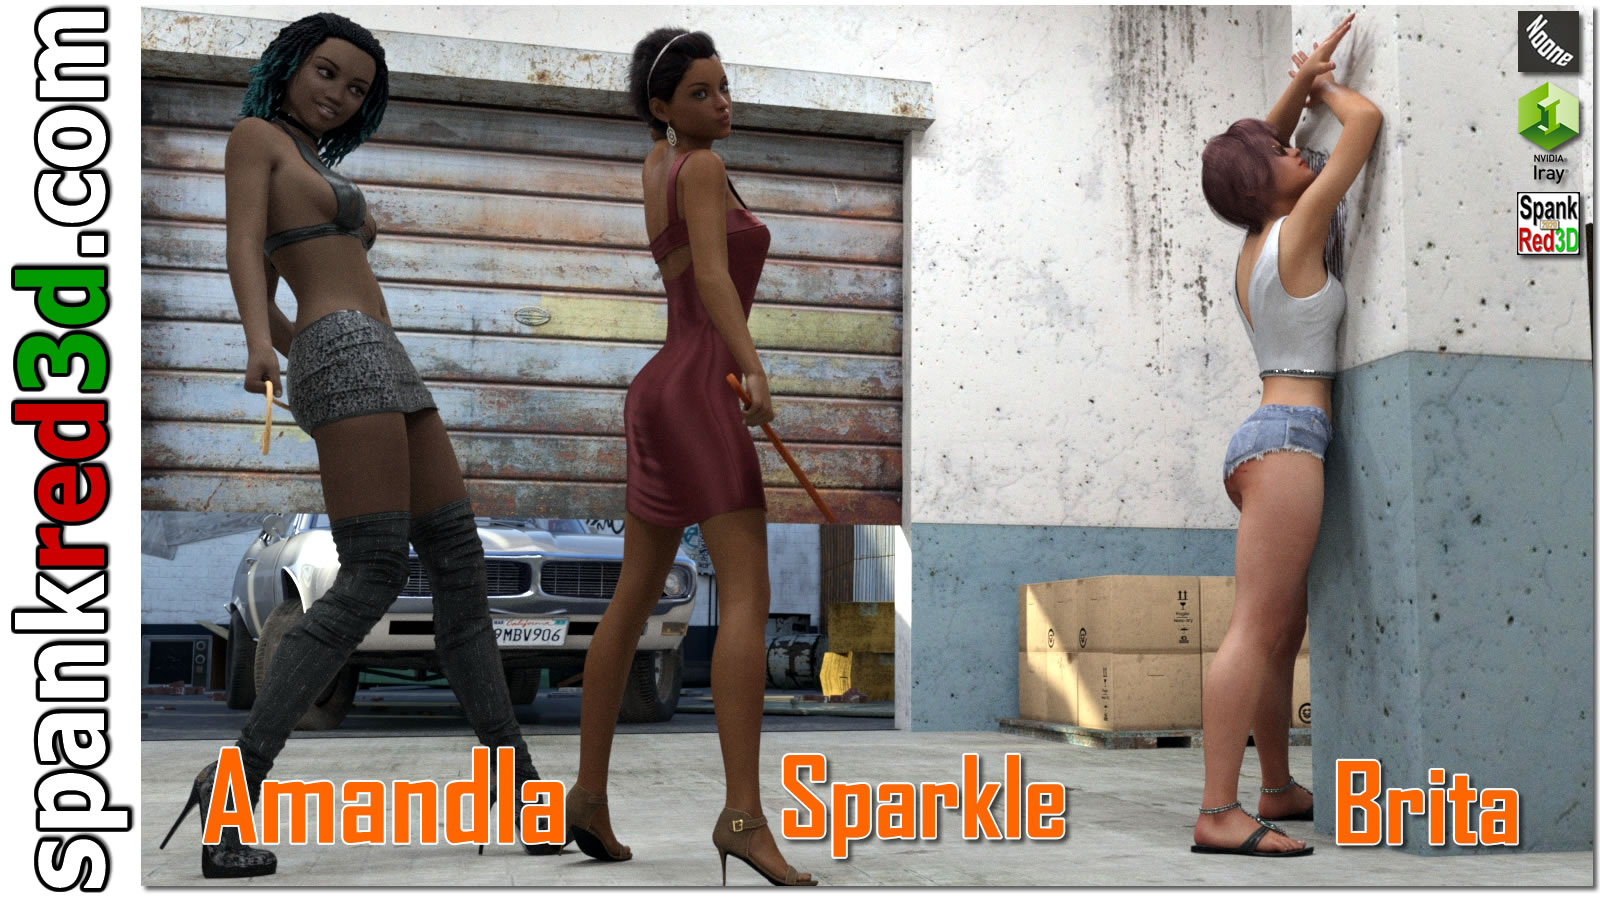 spankred3d 2020 spanking characters